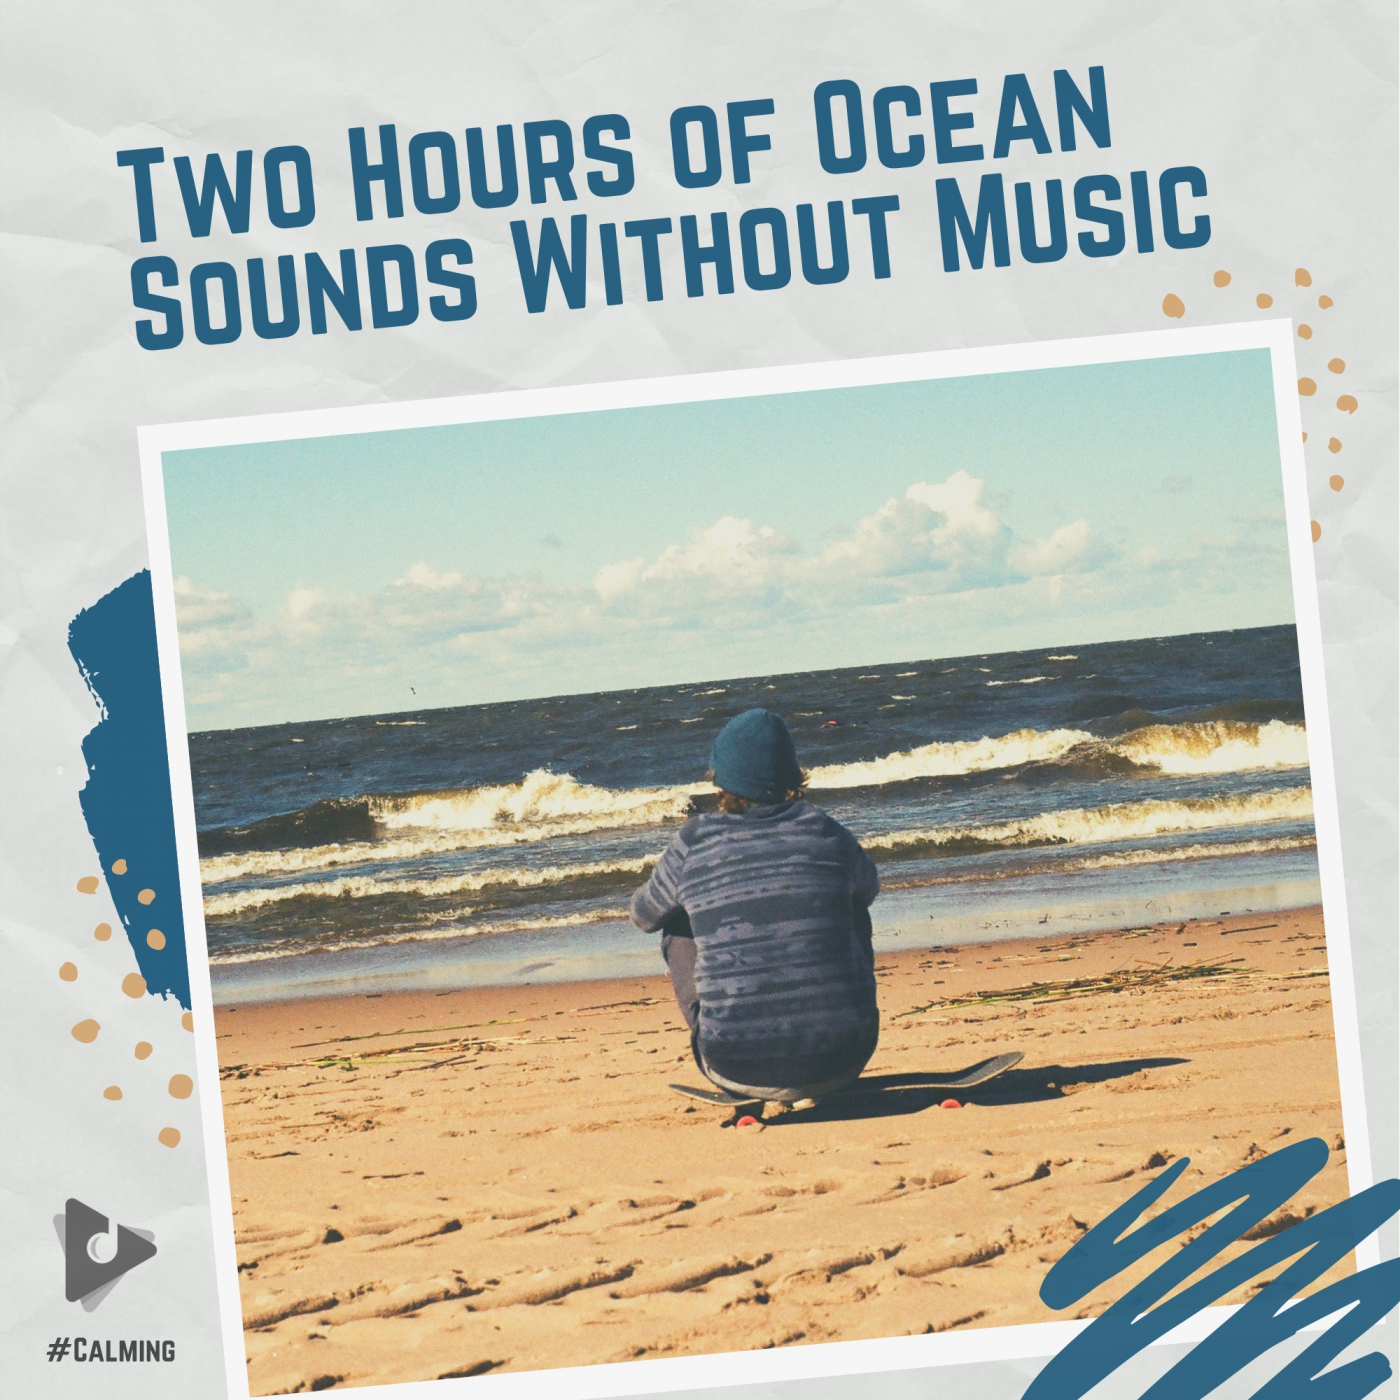 Two Hours of Ocean Sounds Without Music